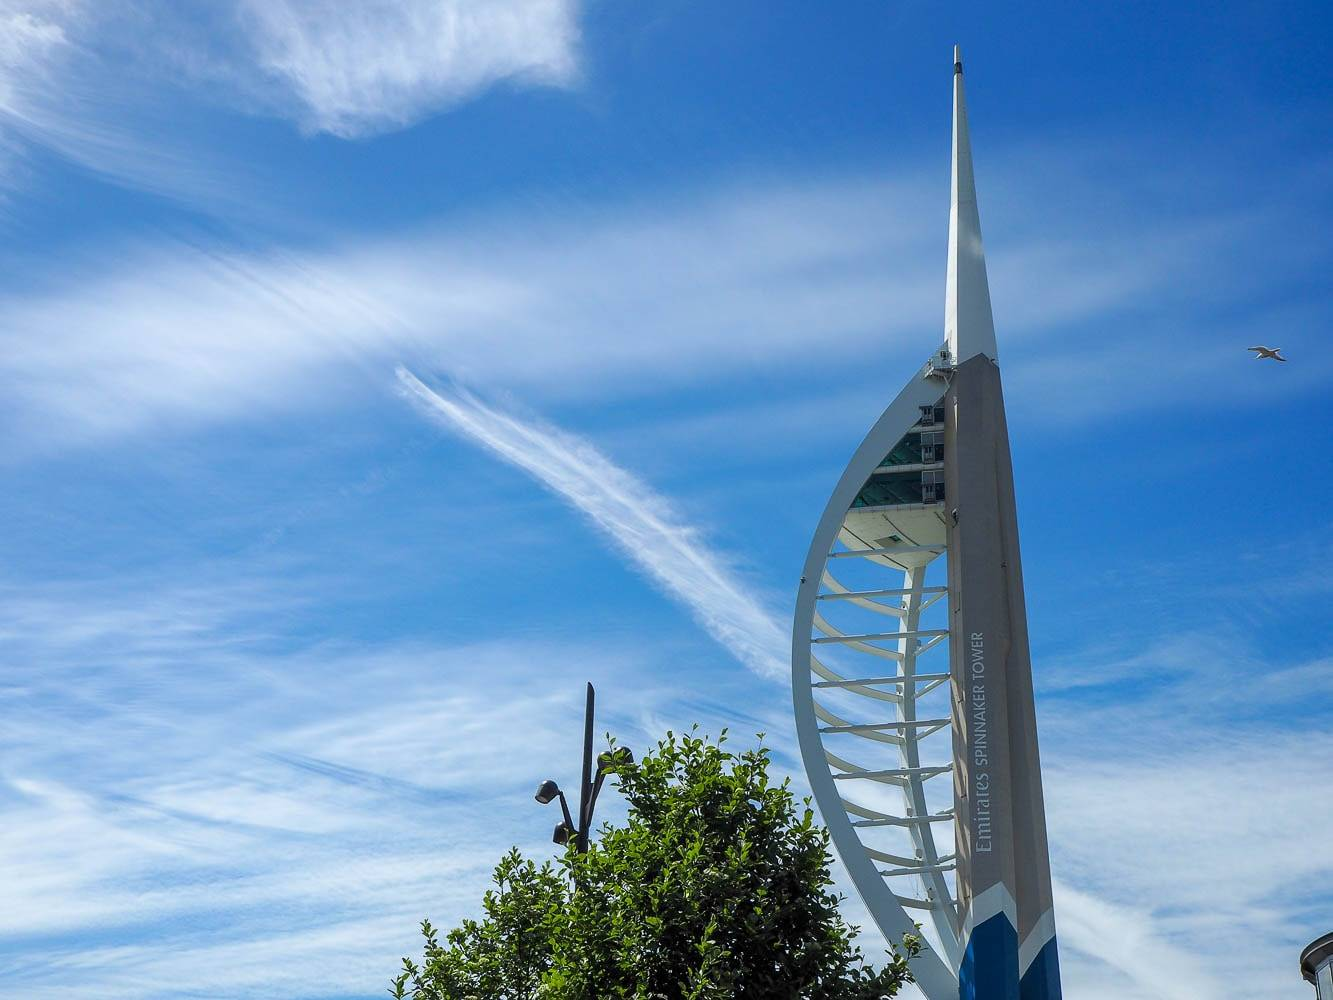 Climbing To The Top Of The Spinnaker Tower…